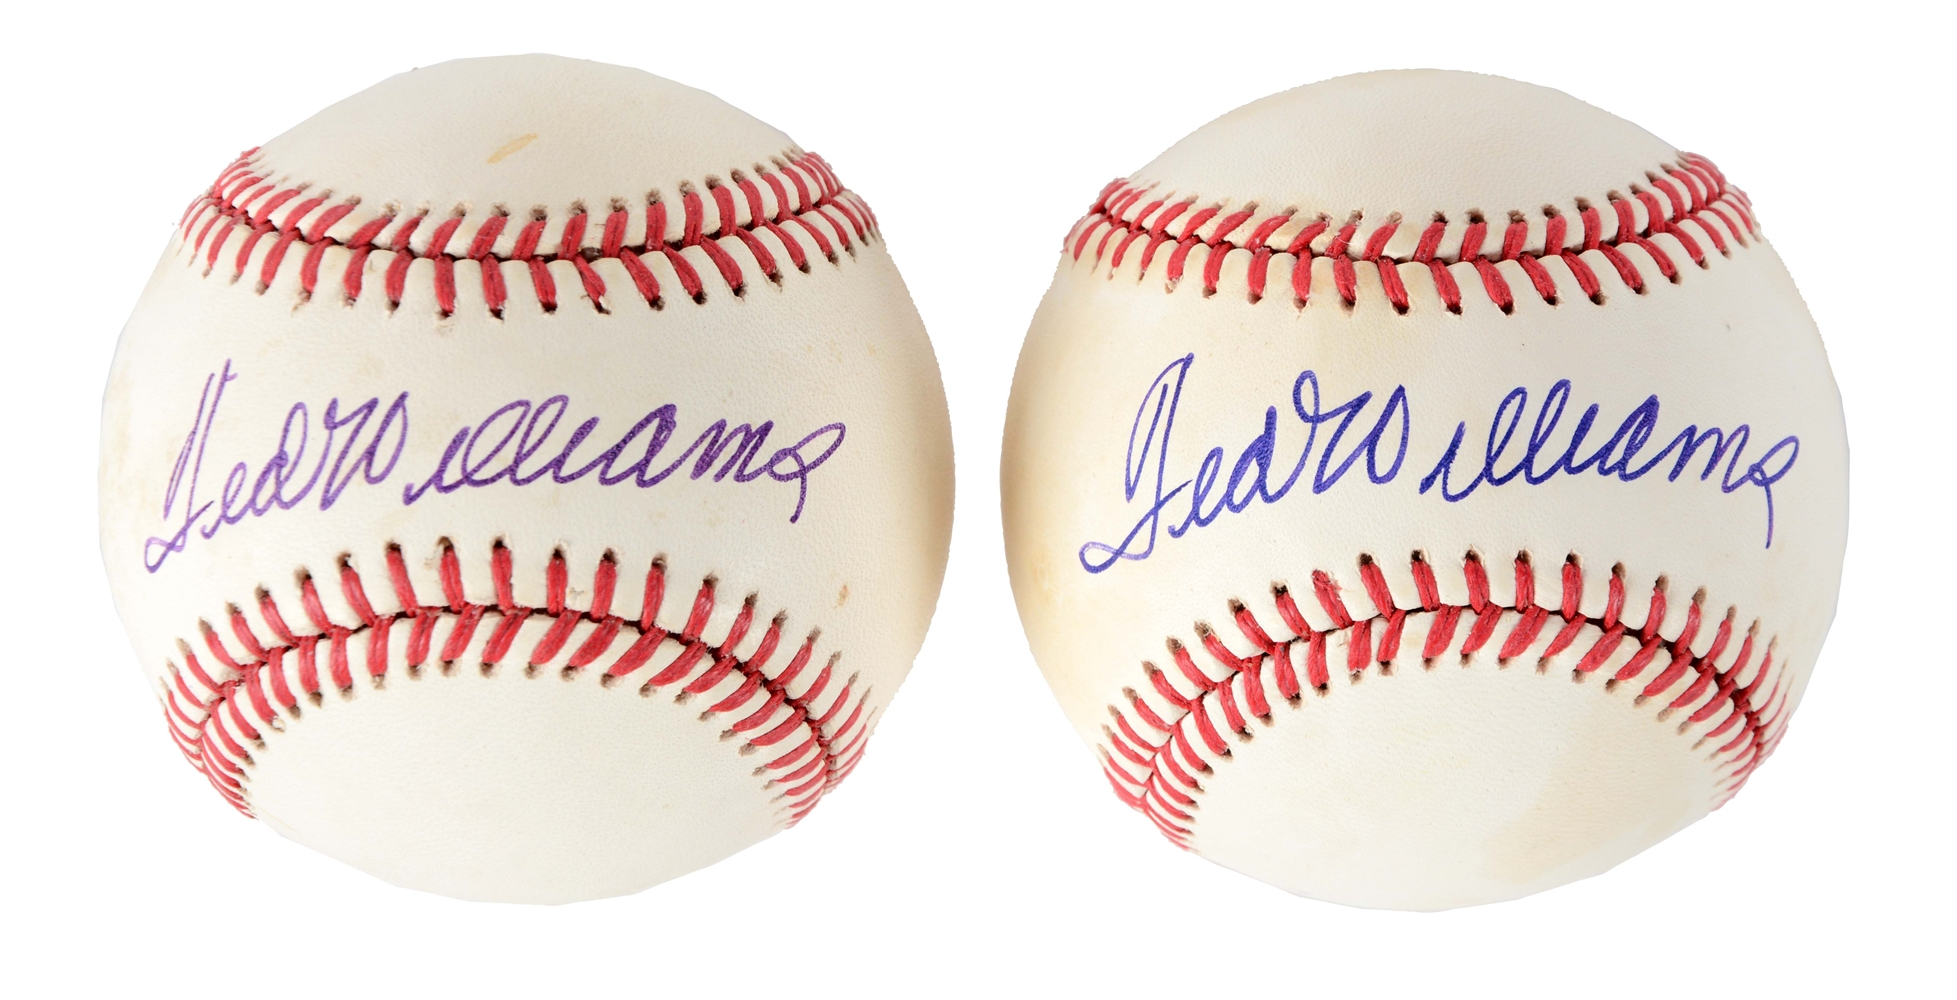 Lot of 2: Ted Williams Signed Baseballs.